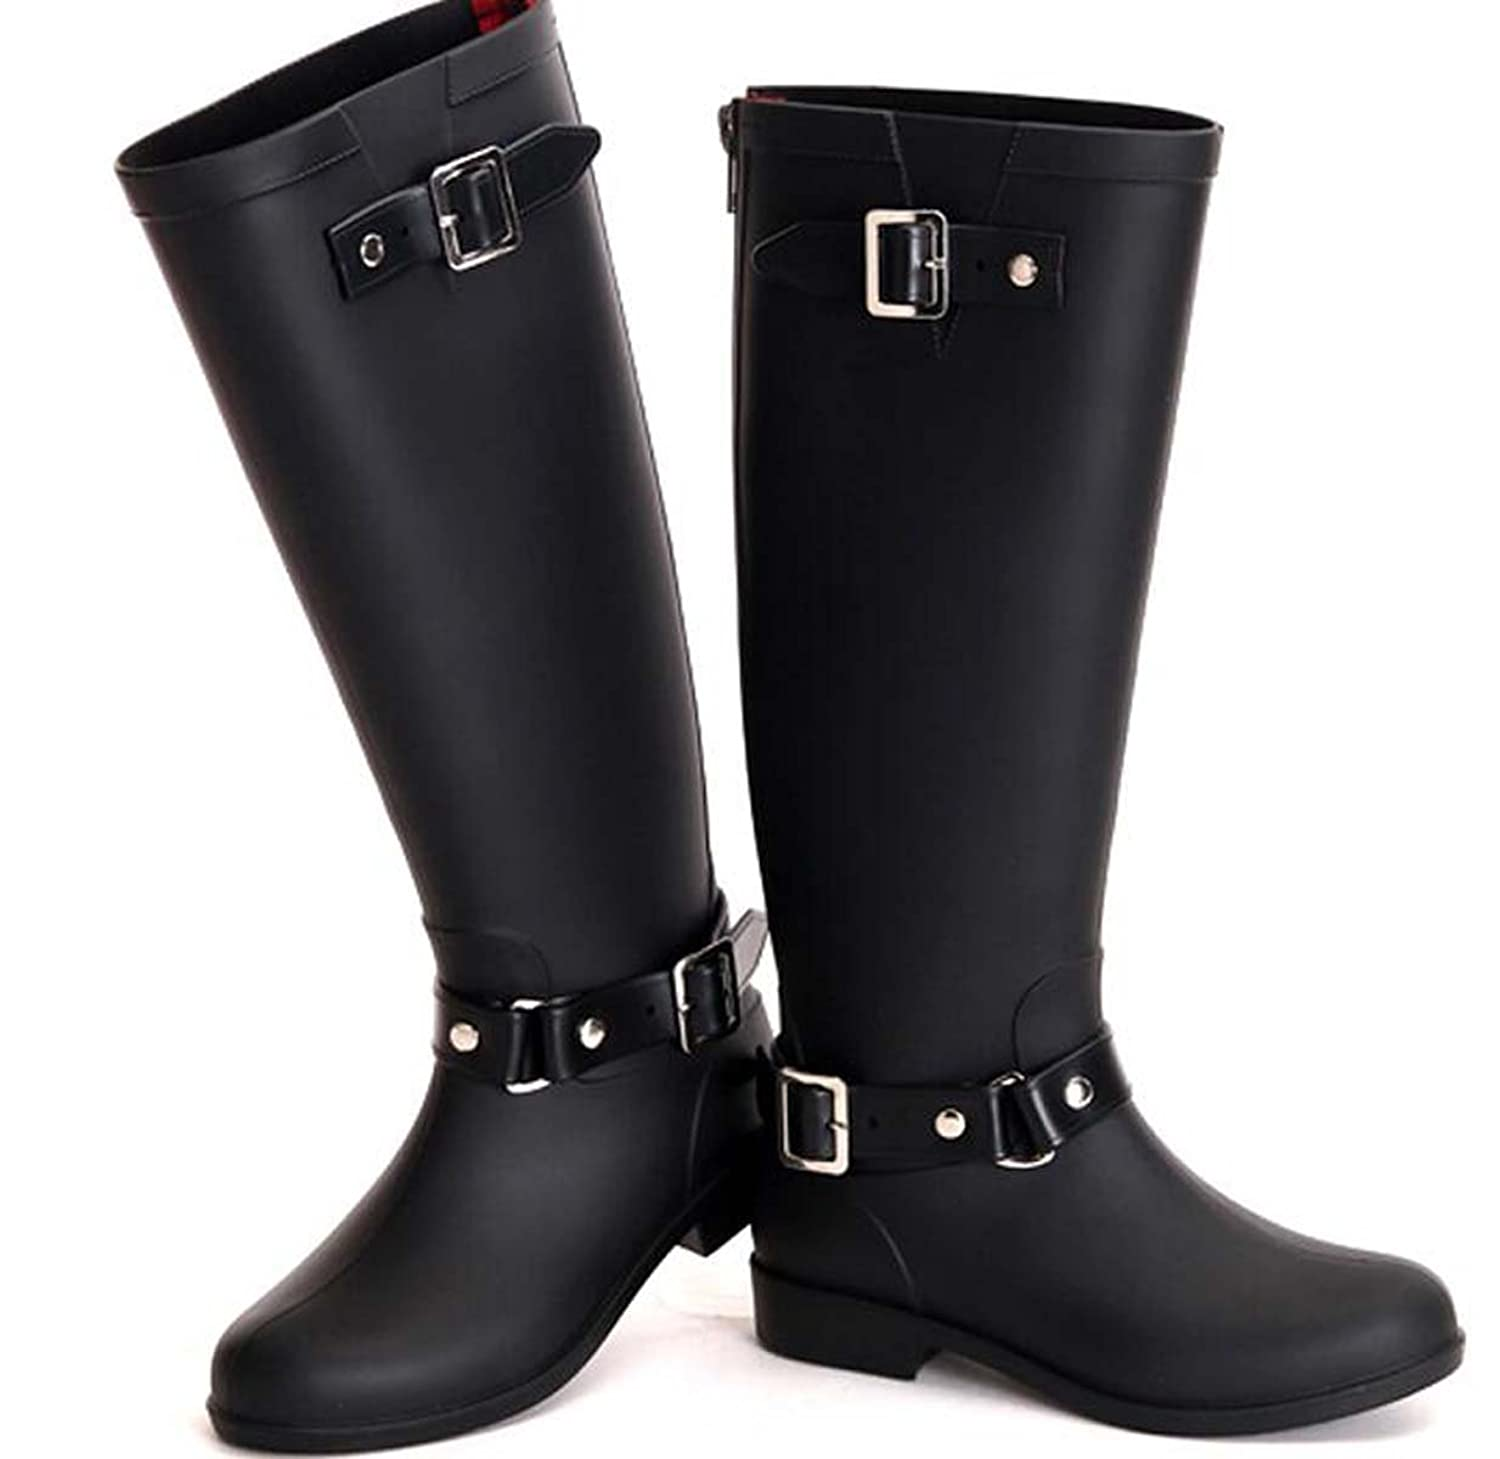 2015 New Fashion Punk Solid Buckle PVC Waterproof Women Rain Boots